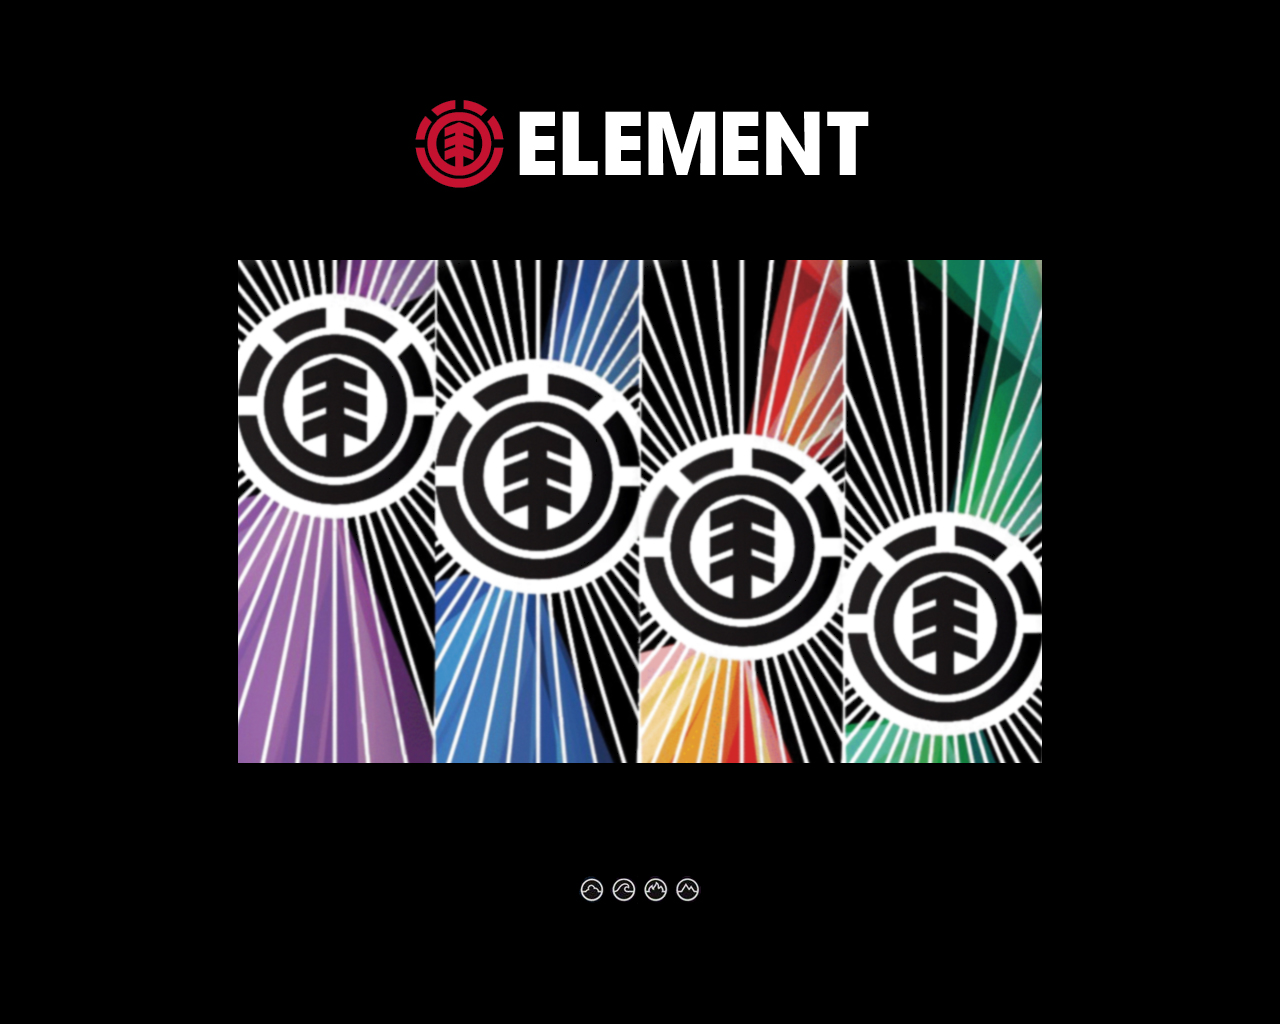 WinCustomize Explore Wallpapers Element Reflections 1280x1024